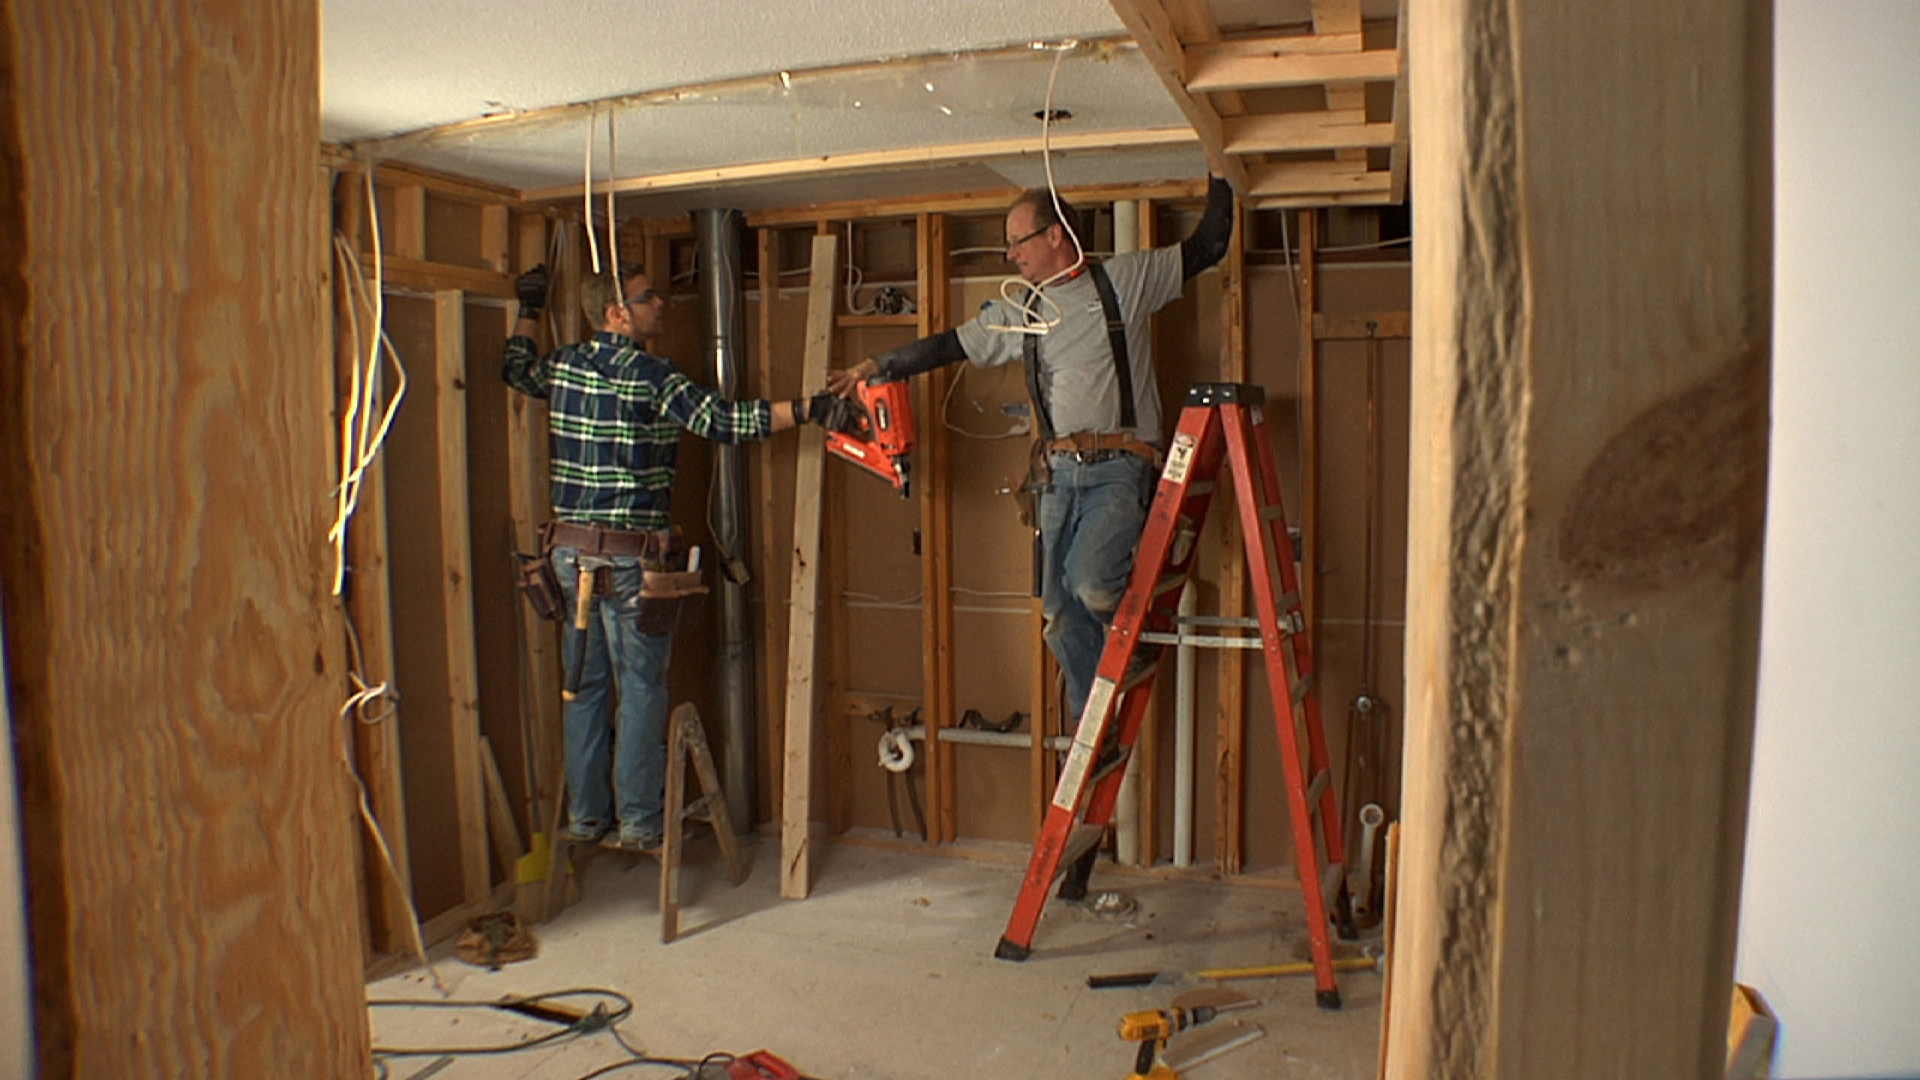 Bath Crashers Jeff Wuensch – Bathroom Construction